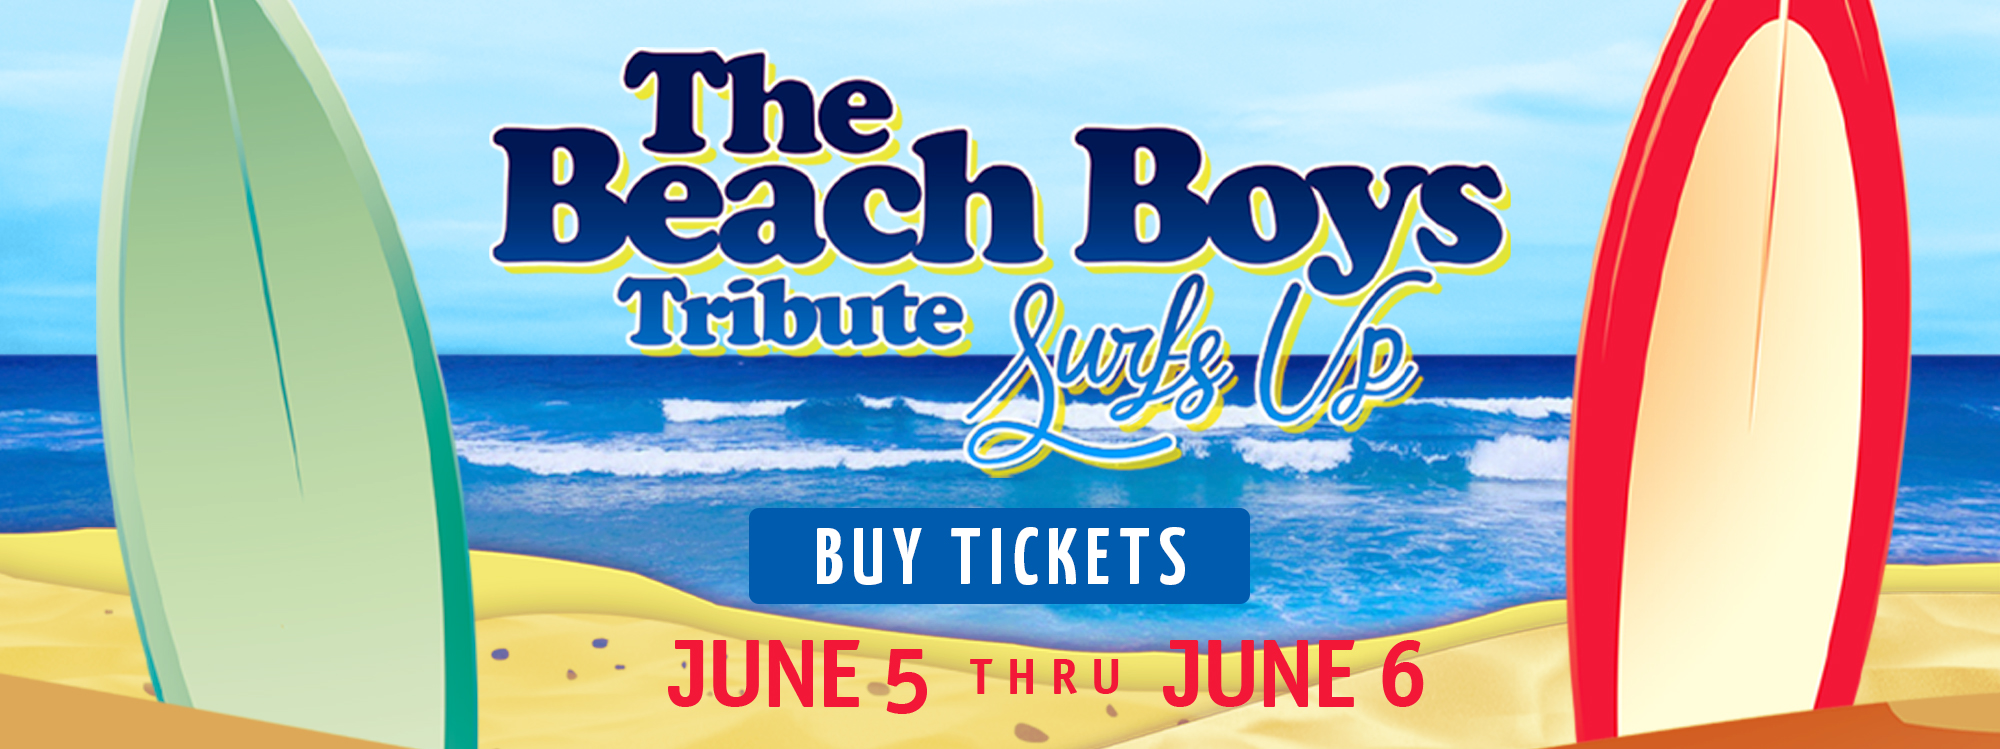 Surfs Up: The Beach Boys Tribute